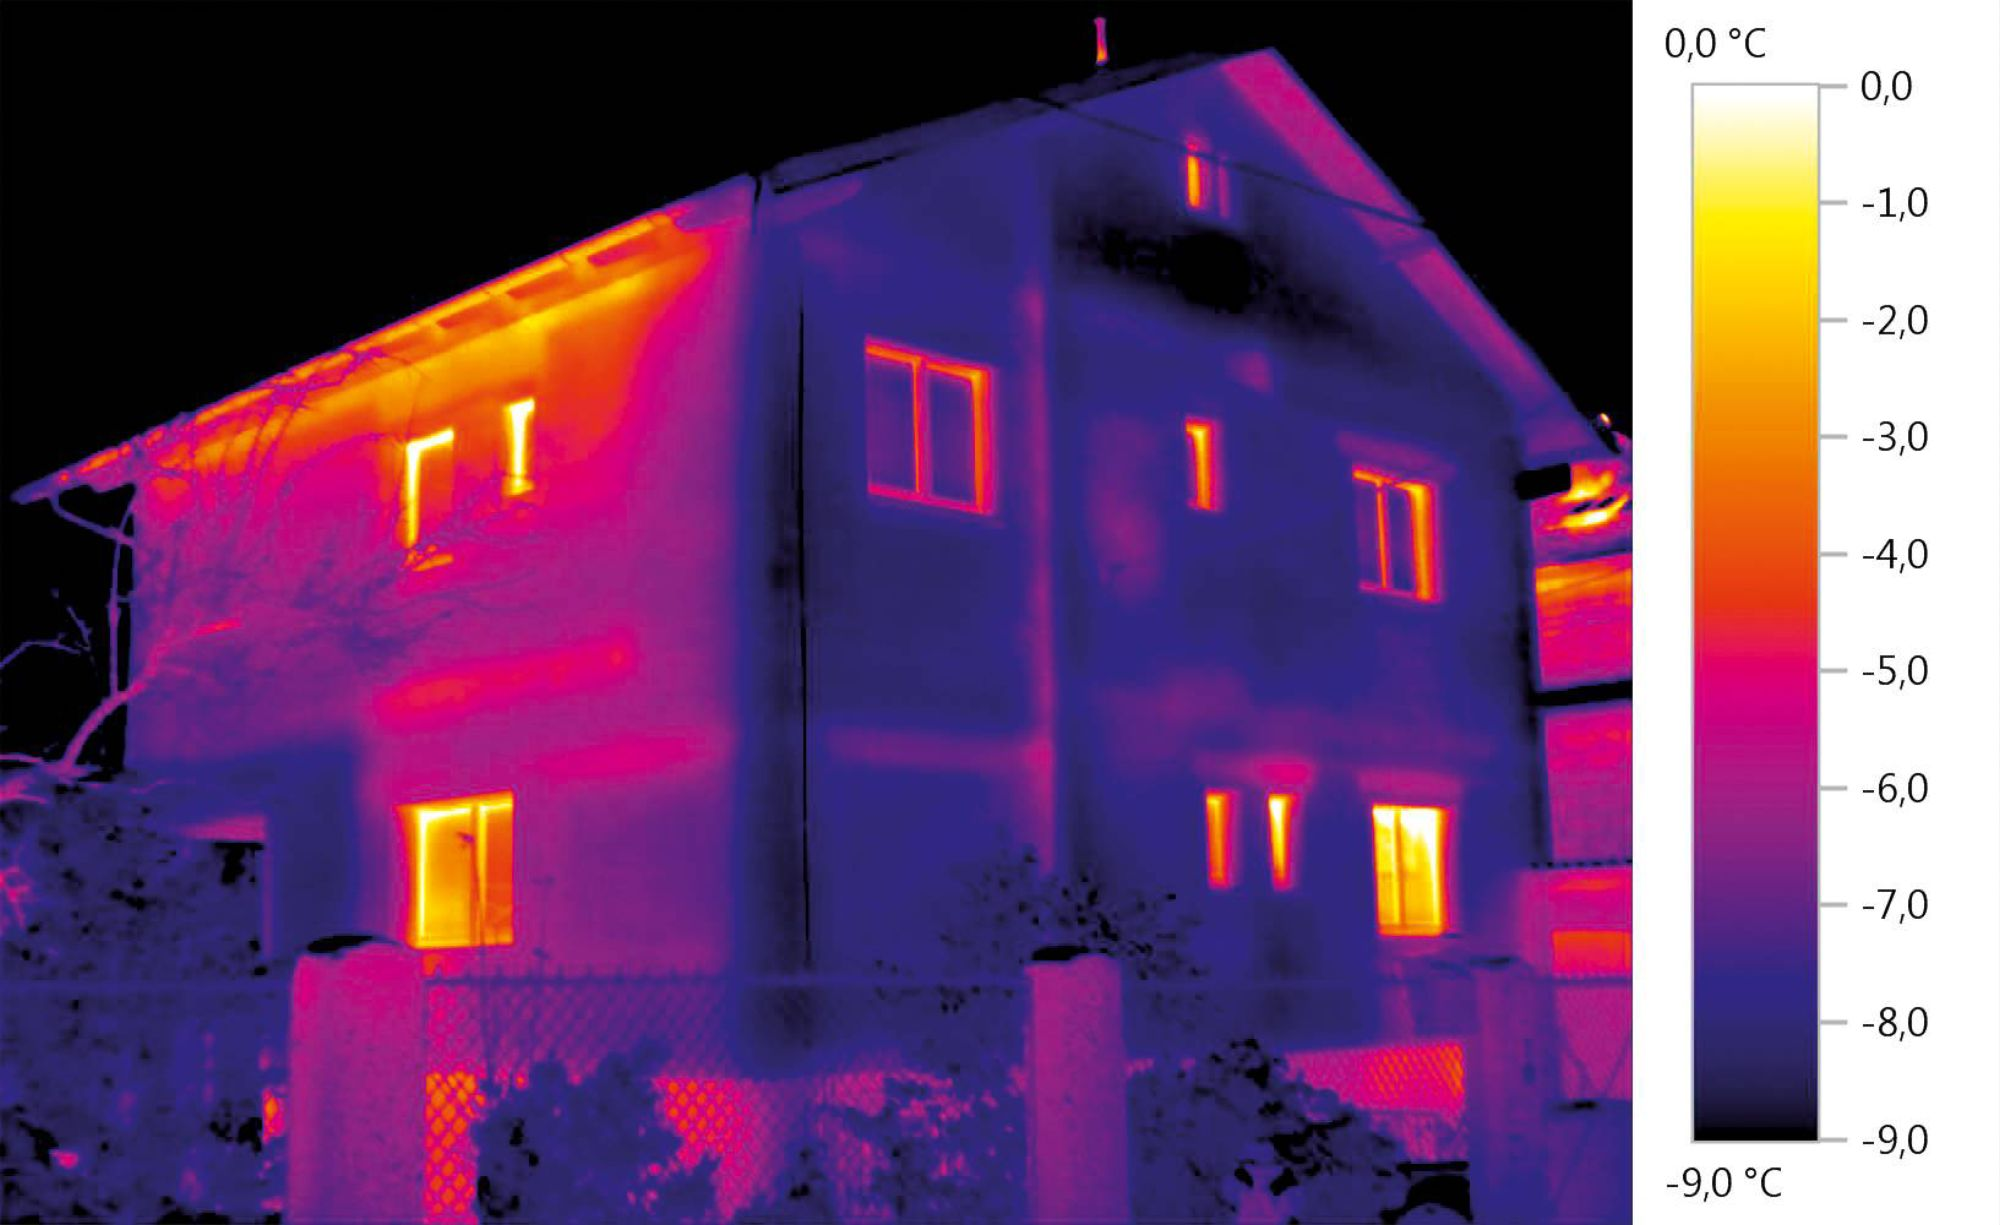 cn_applications_hvacr_thermography_building_02.jpg